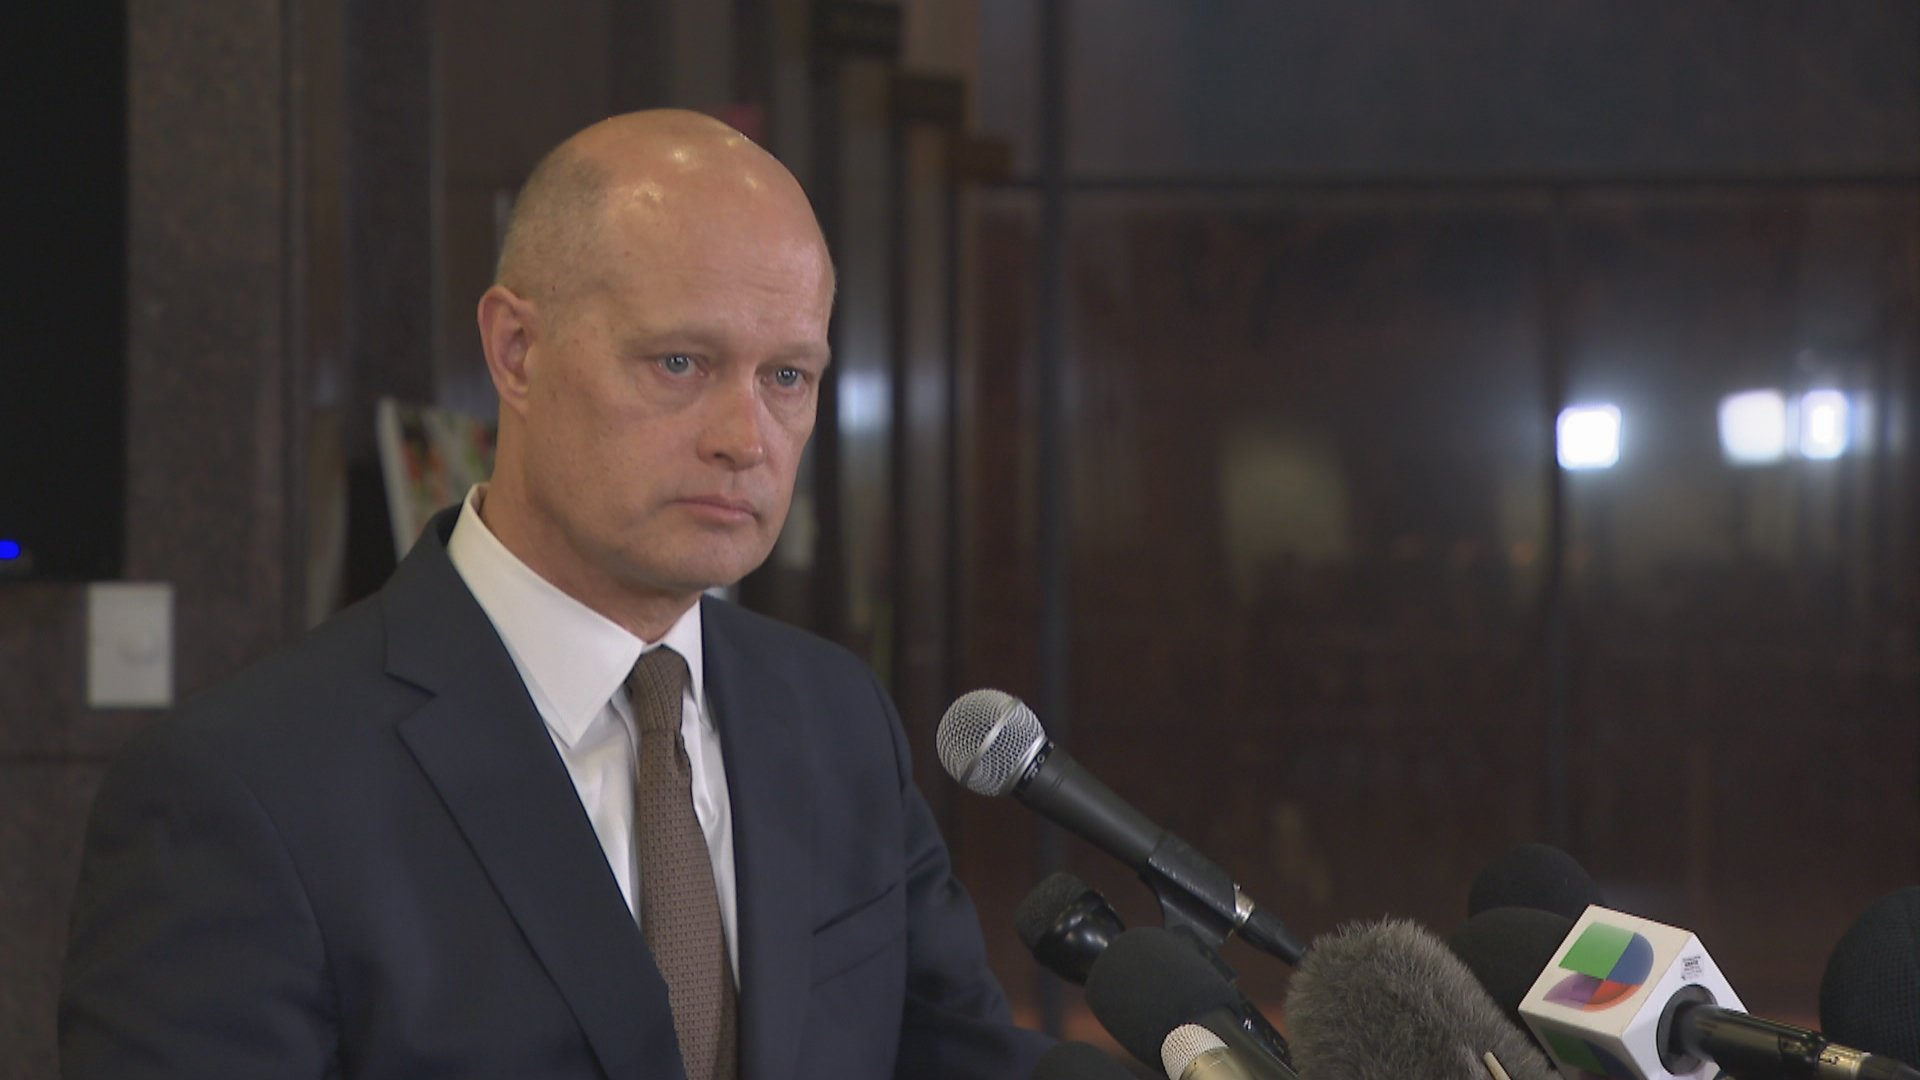 Special prosecutor Joseph McMahon addresses the media shortly after Jason Van Dyke's sentence was announced Friday, Jan. 18, 2019.